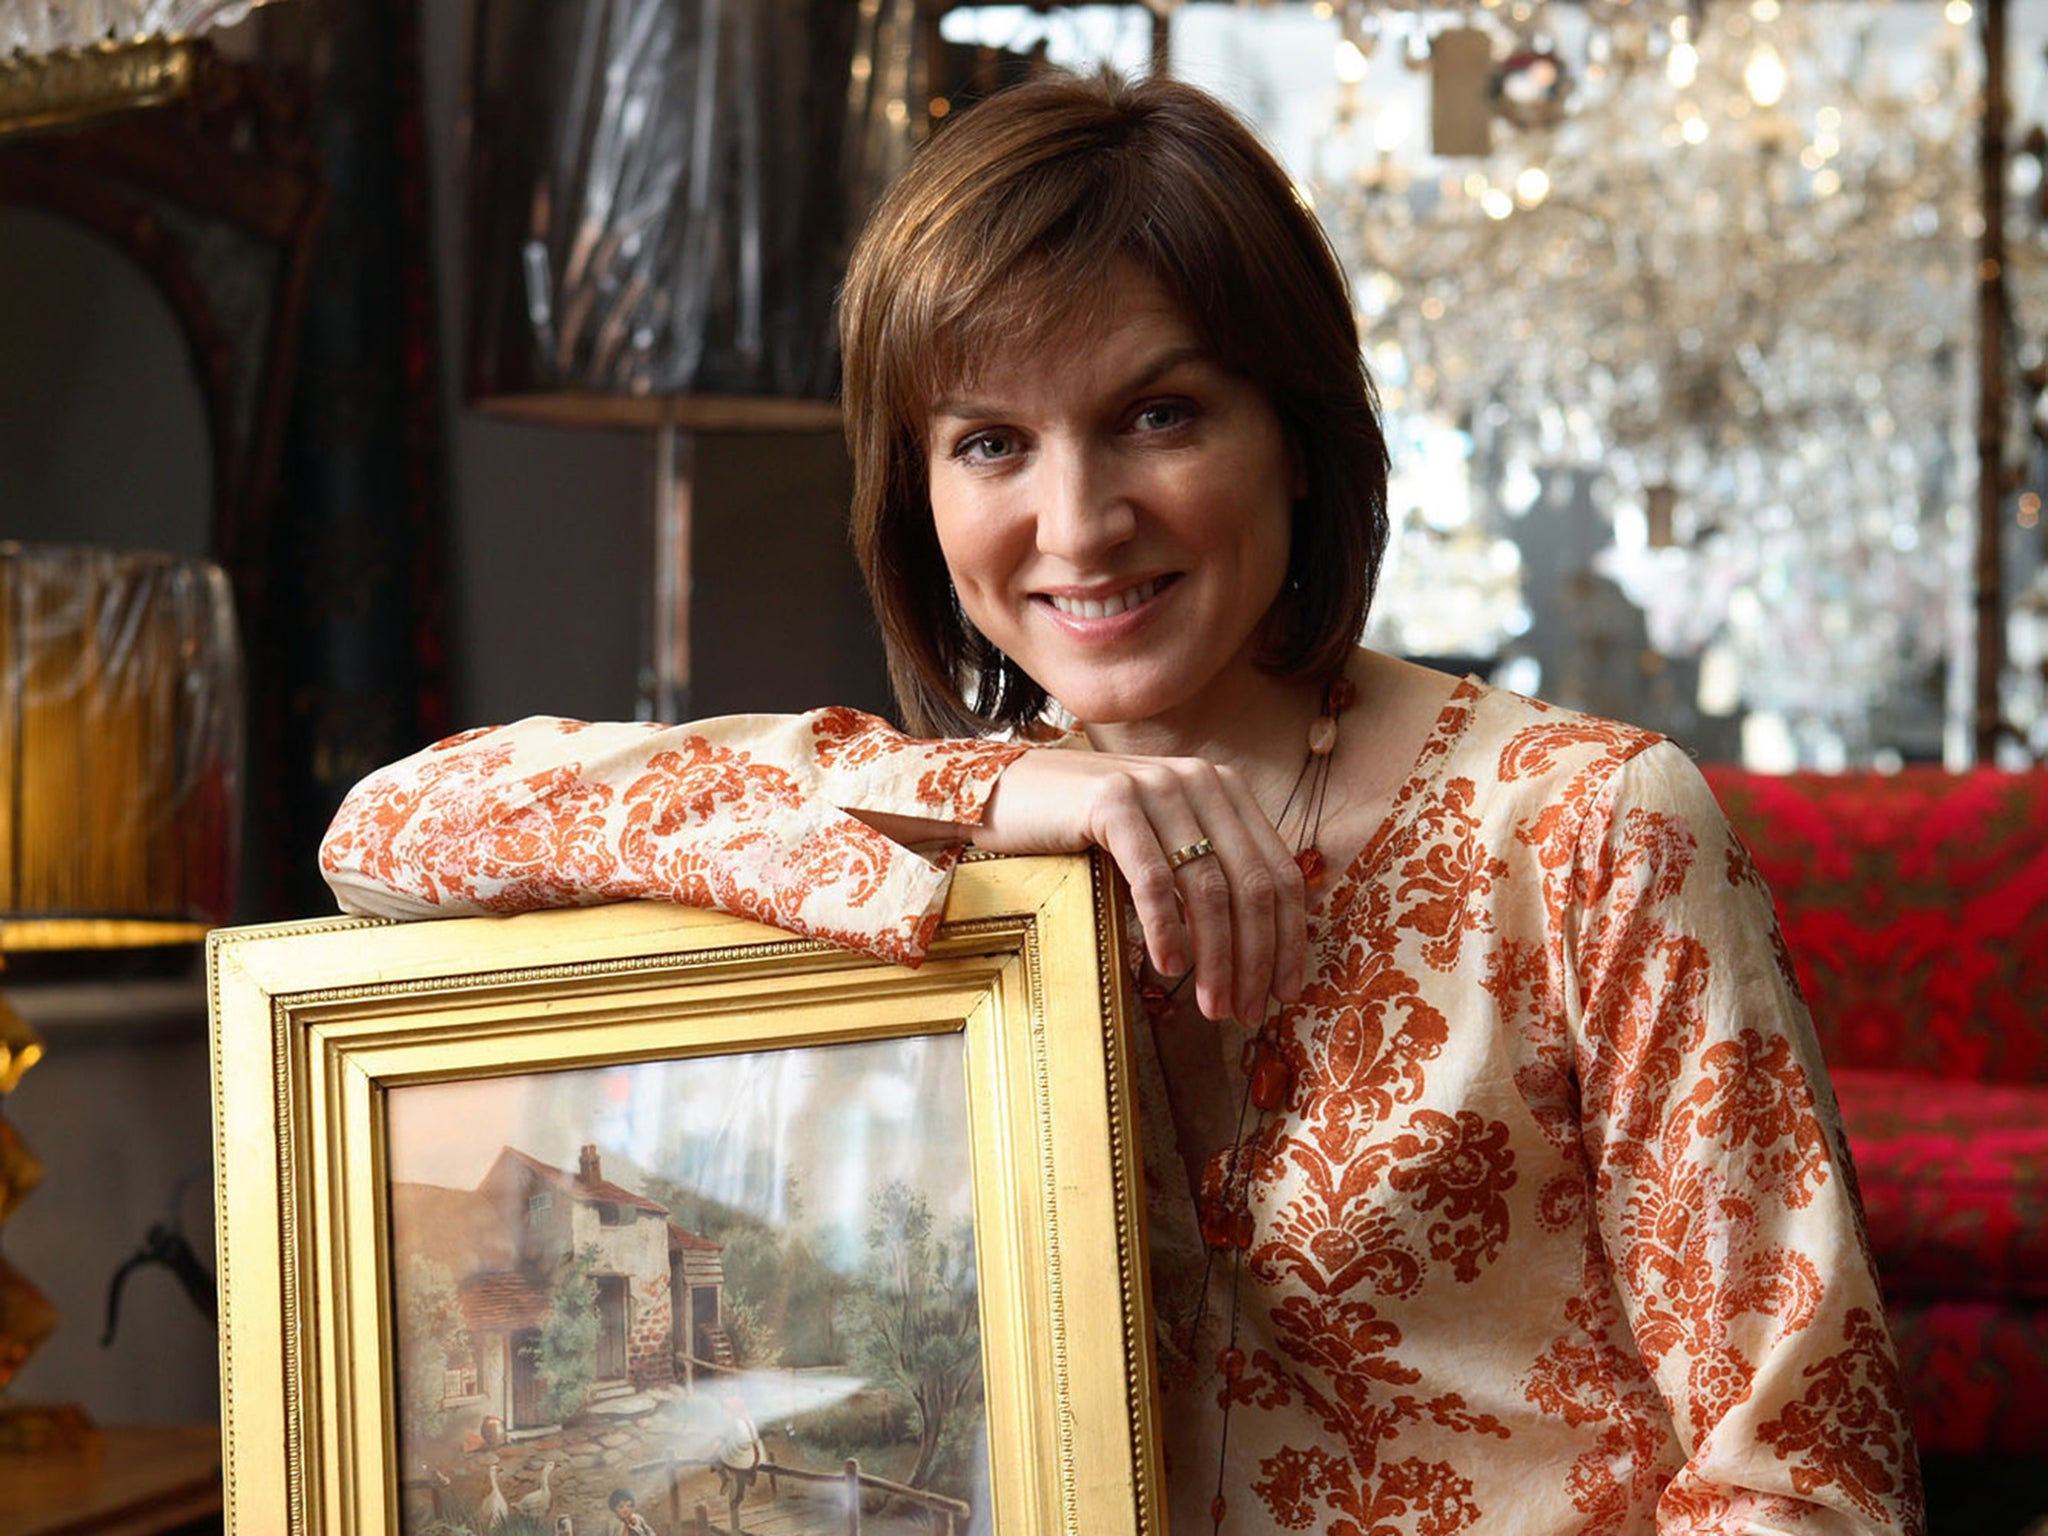 Fiona Bruce: The BBC's most dependable news anchor primed to succeed David Dimbleby on Question Time